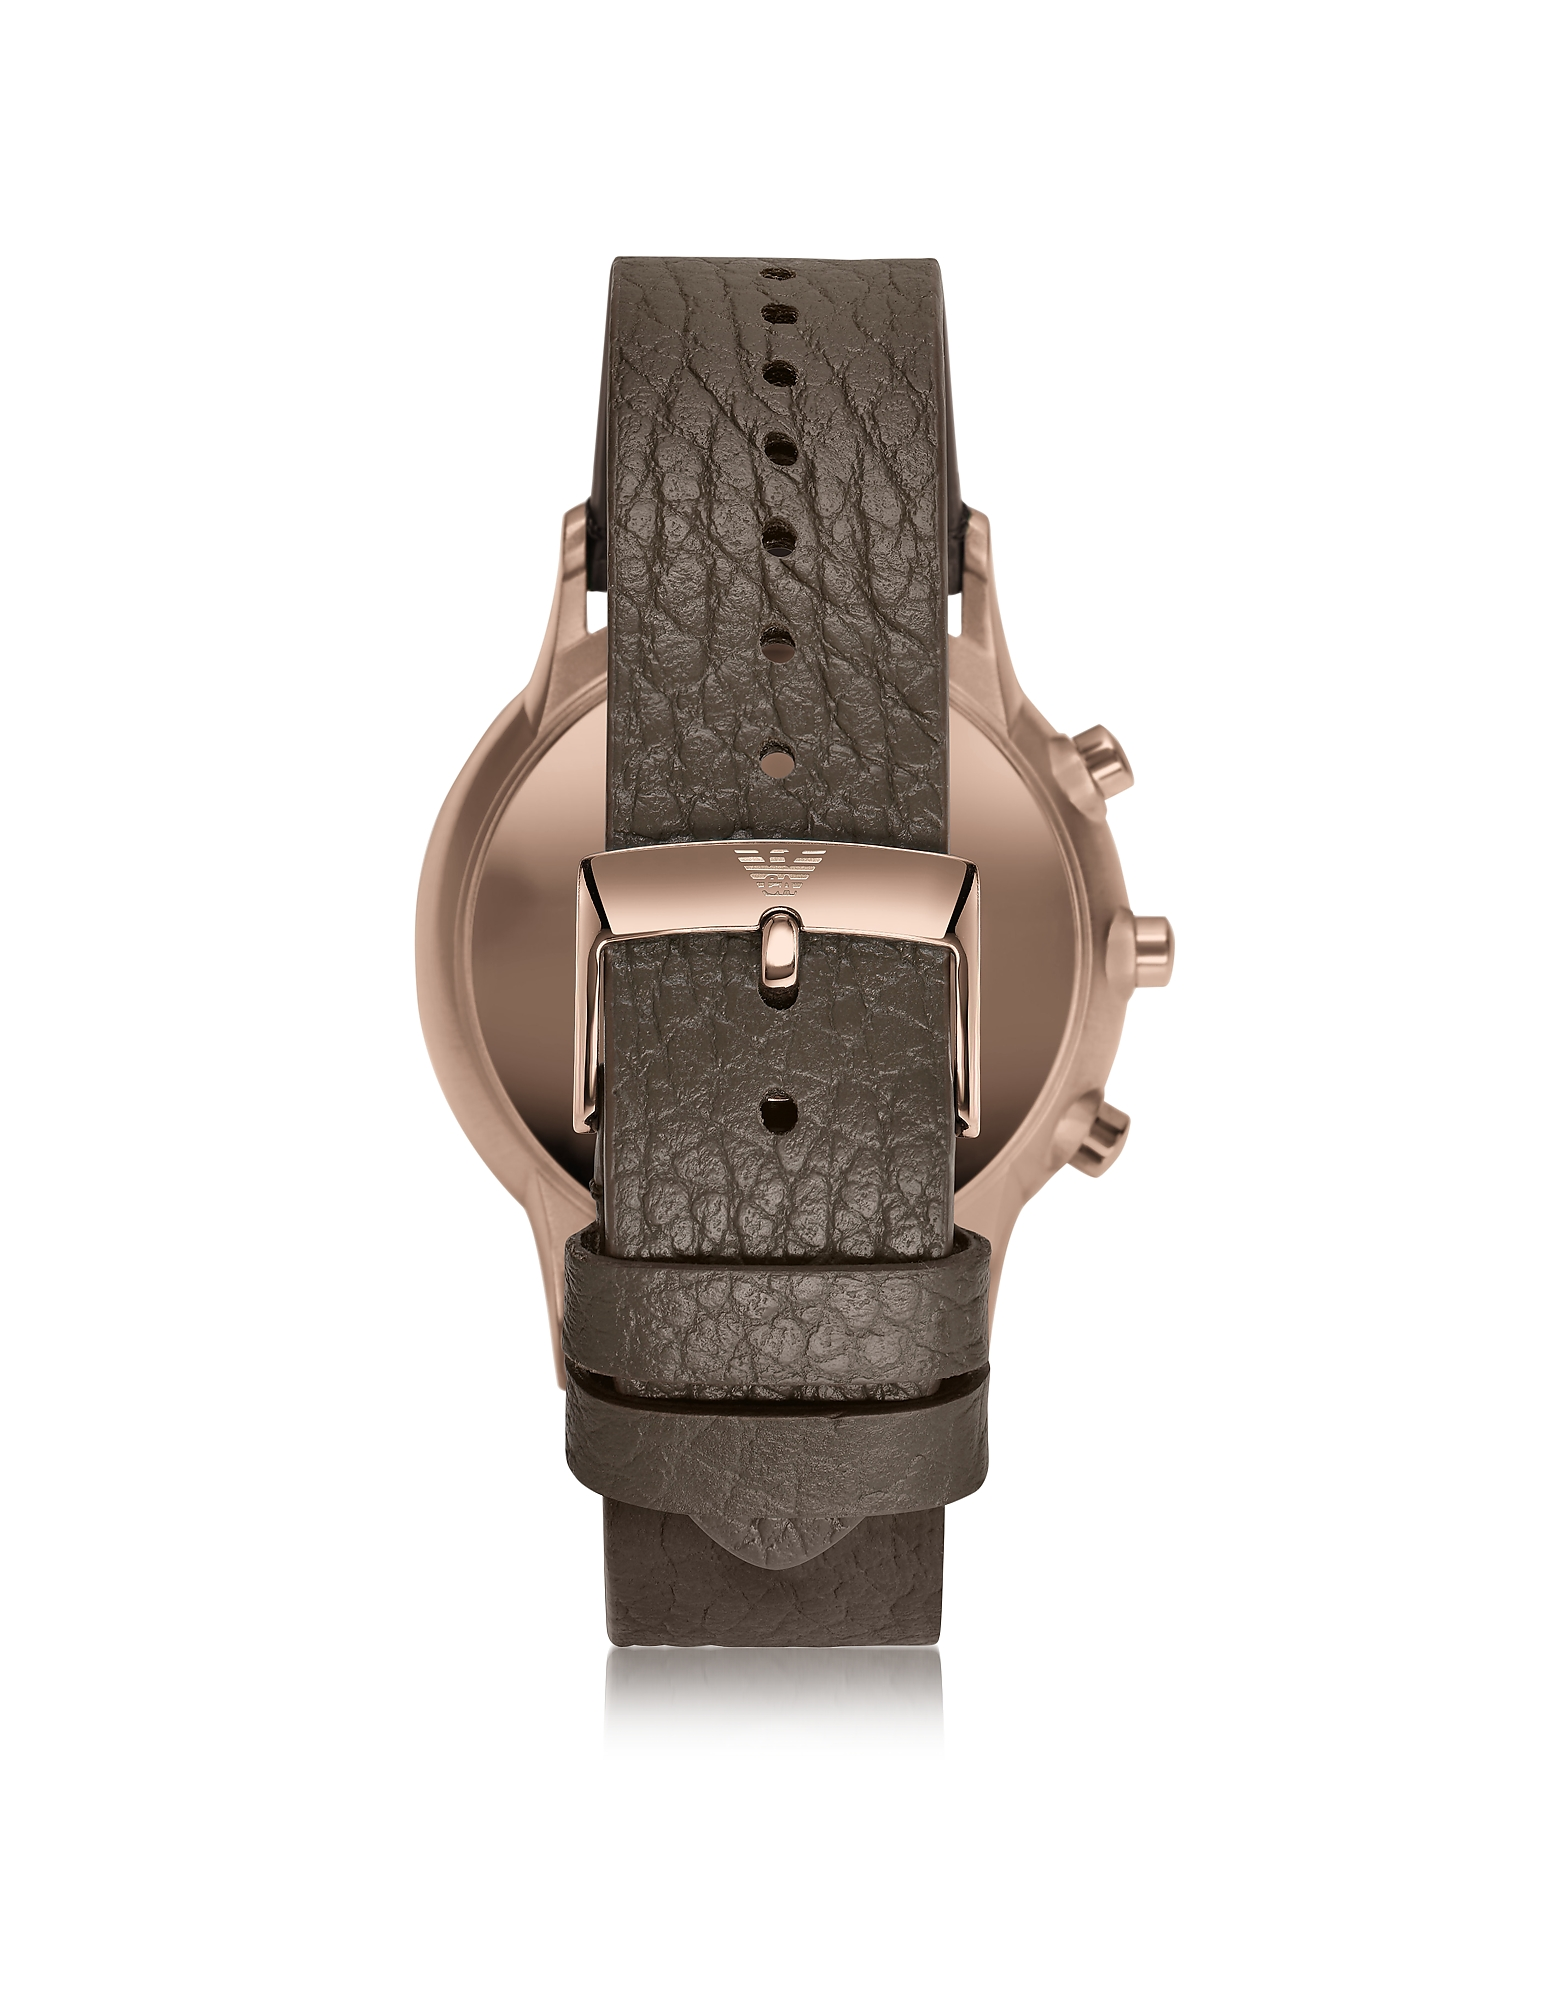 Connected Rose Gold-Tone PVD Stainless Steel Hybrid Men's Smartwatch w/Leather Strap от Forzieri.com INT